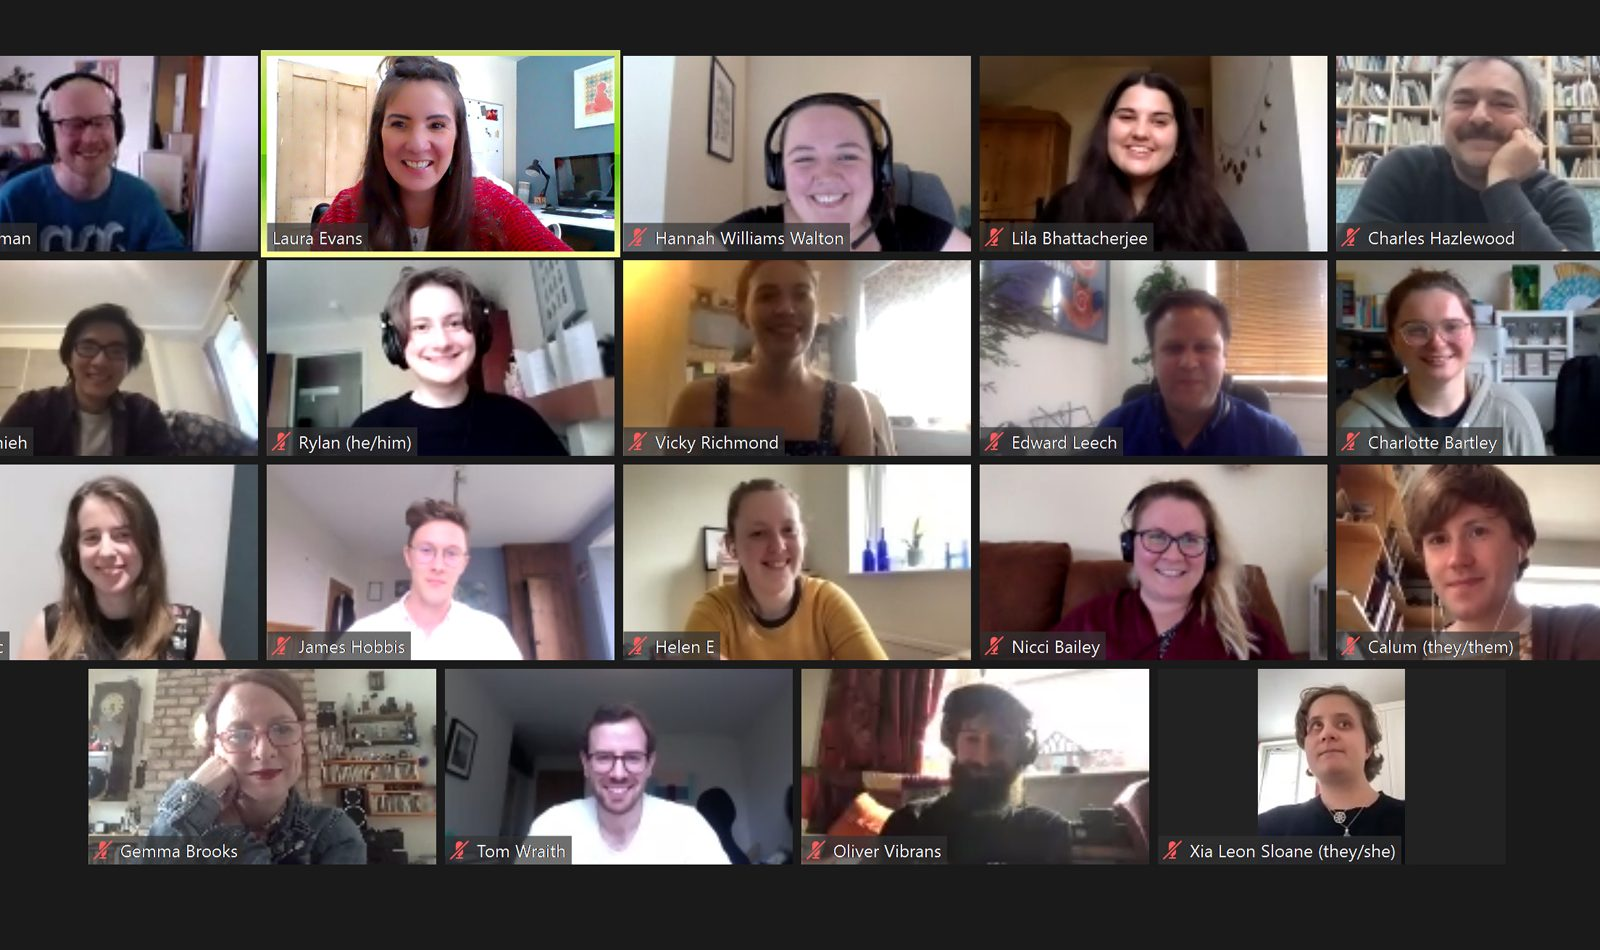 A screenshot of a video call with 19 smiling participants